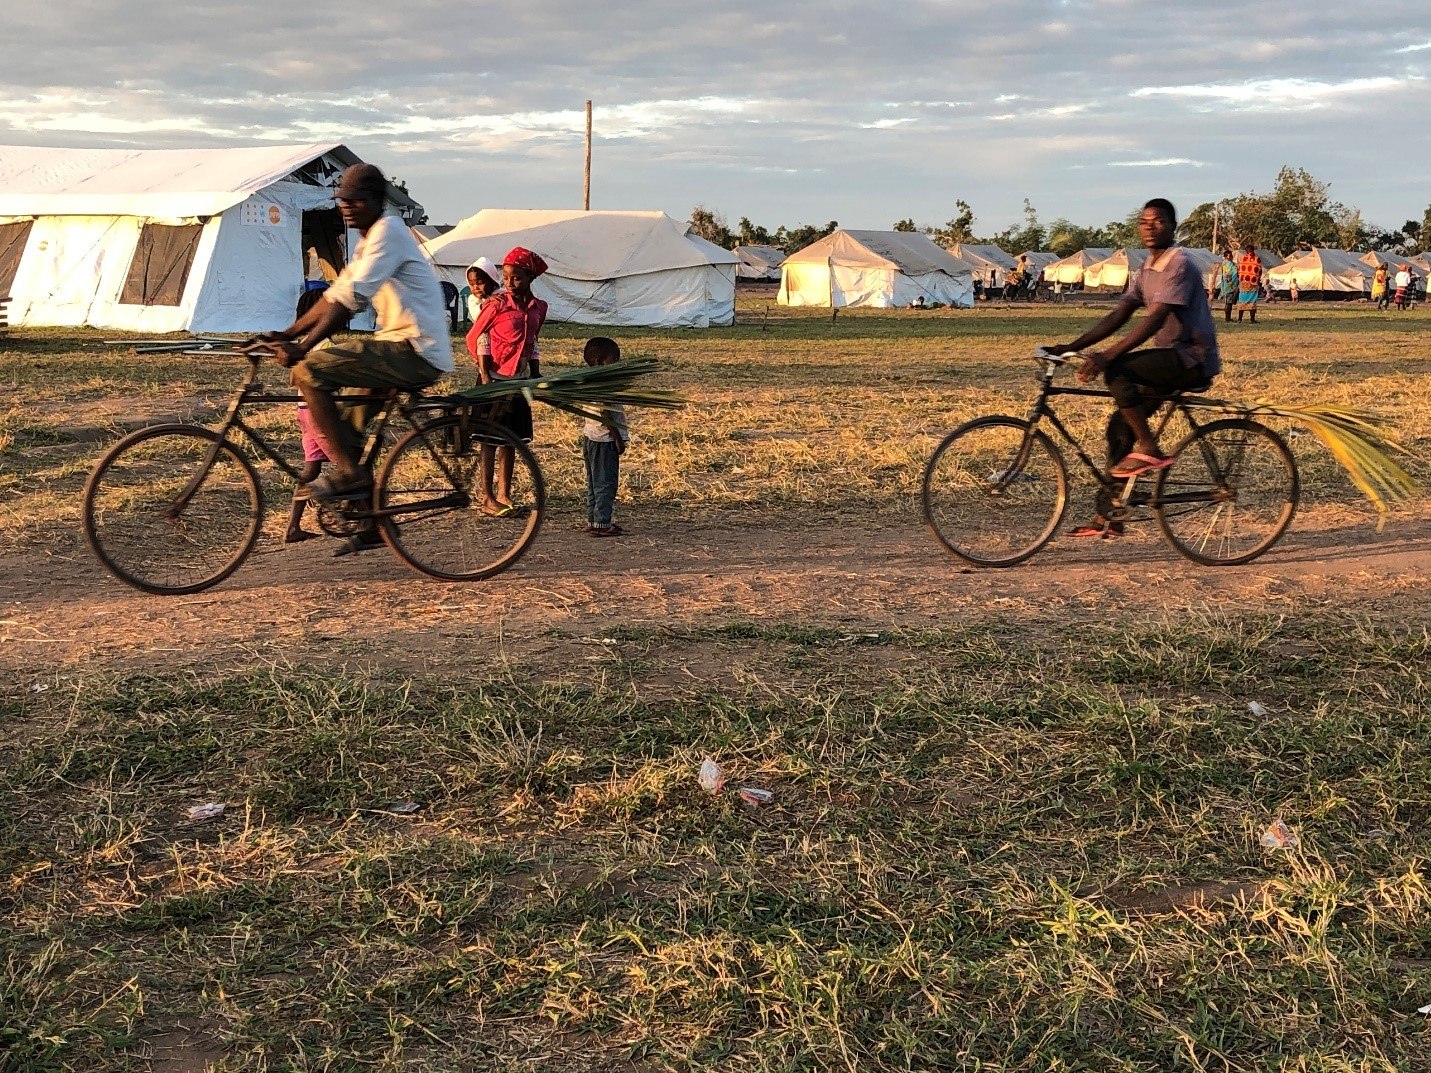 Bicyclists in the Guara Guara temporary accommodation site in central Mozambique.